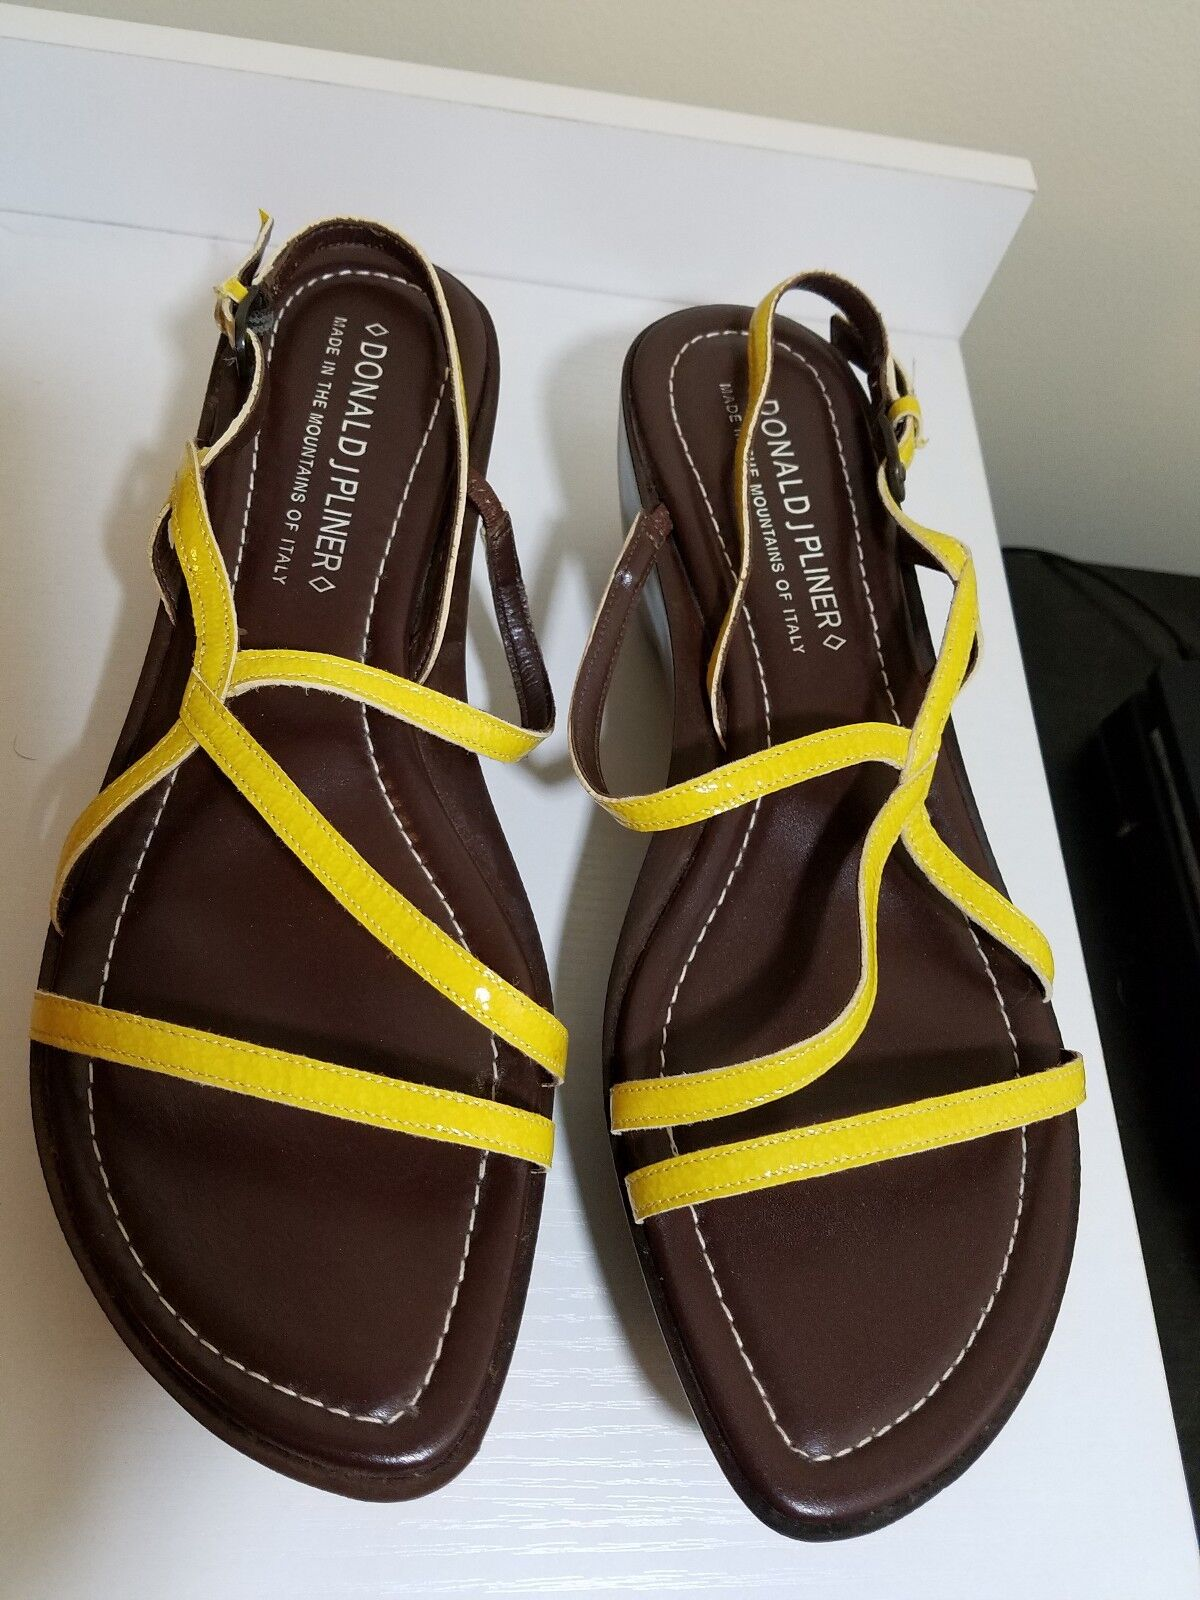 Donald Pliner womens sandals yellow brown strappy size 10 M New NWT medium